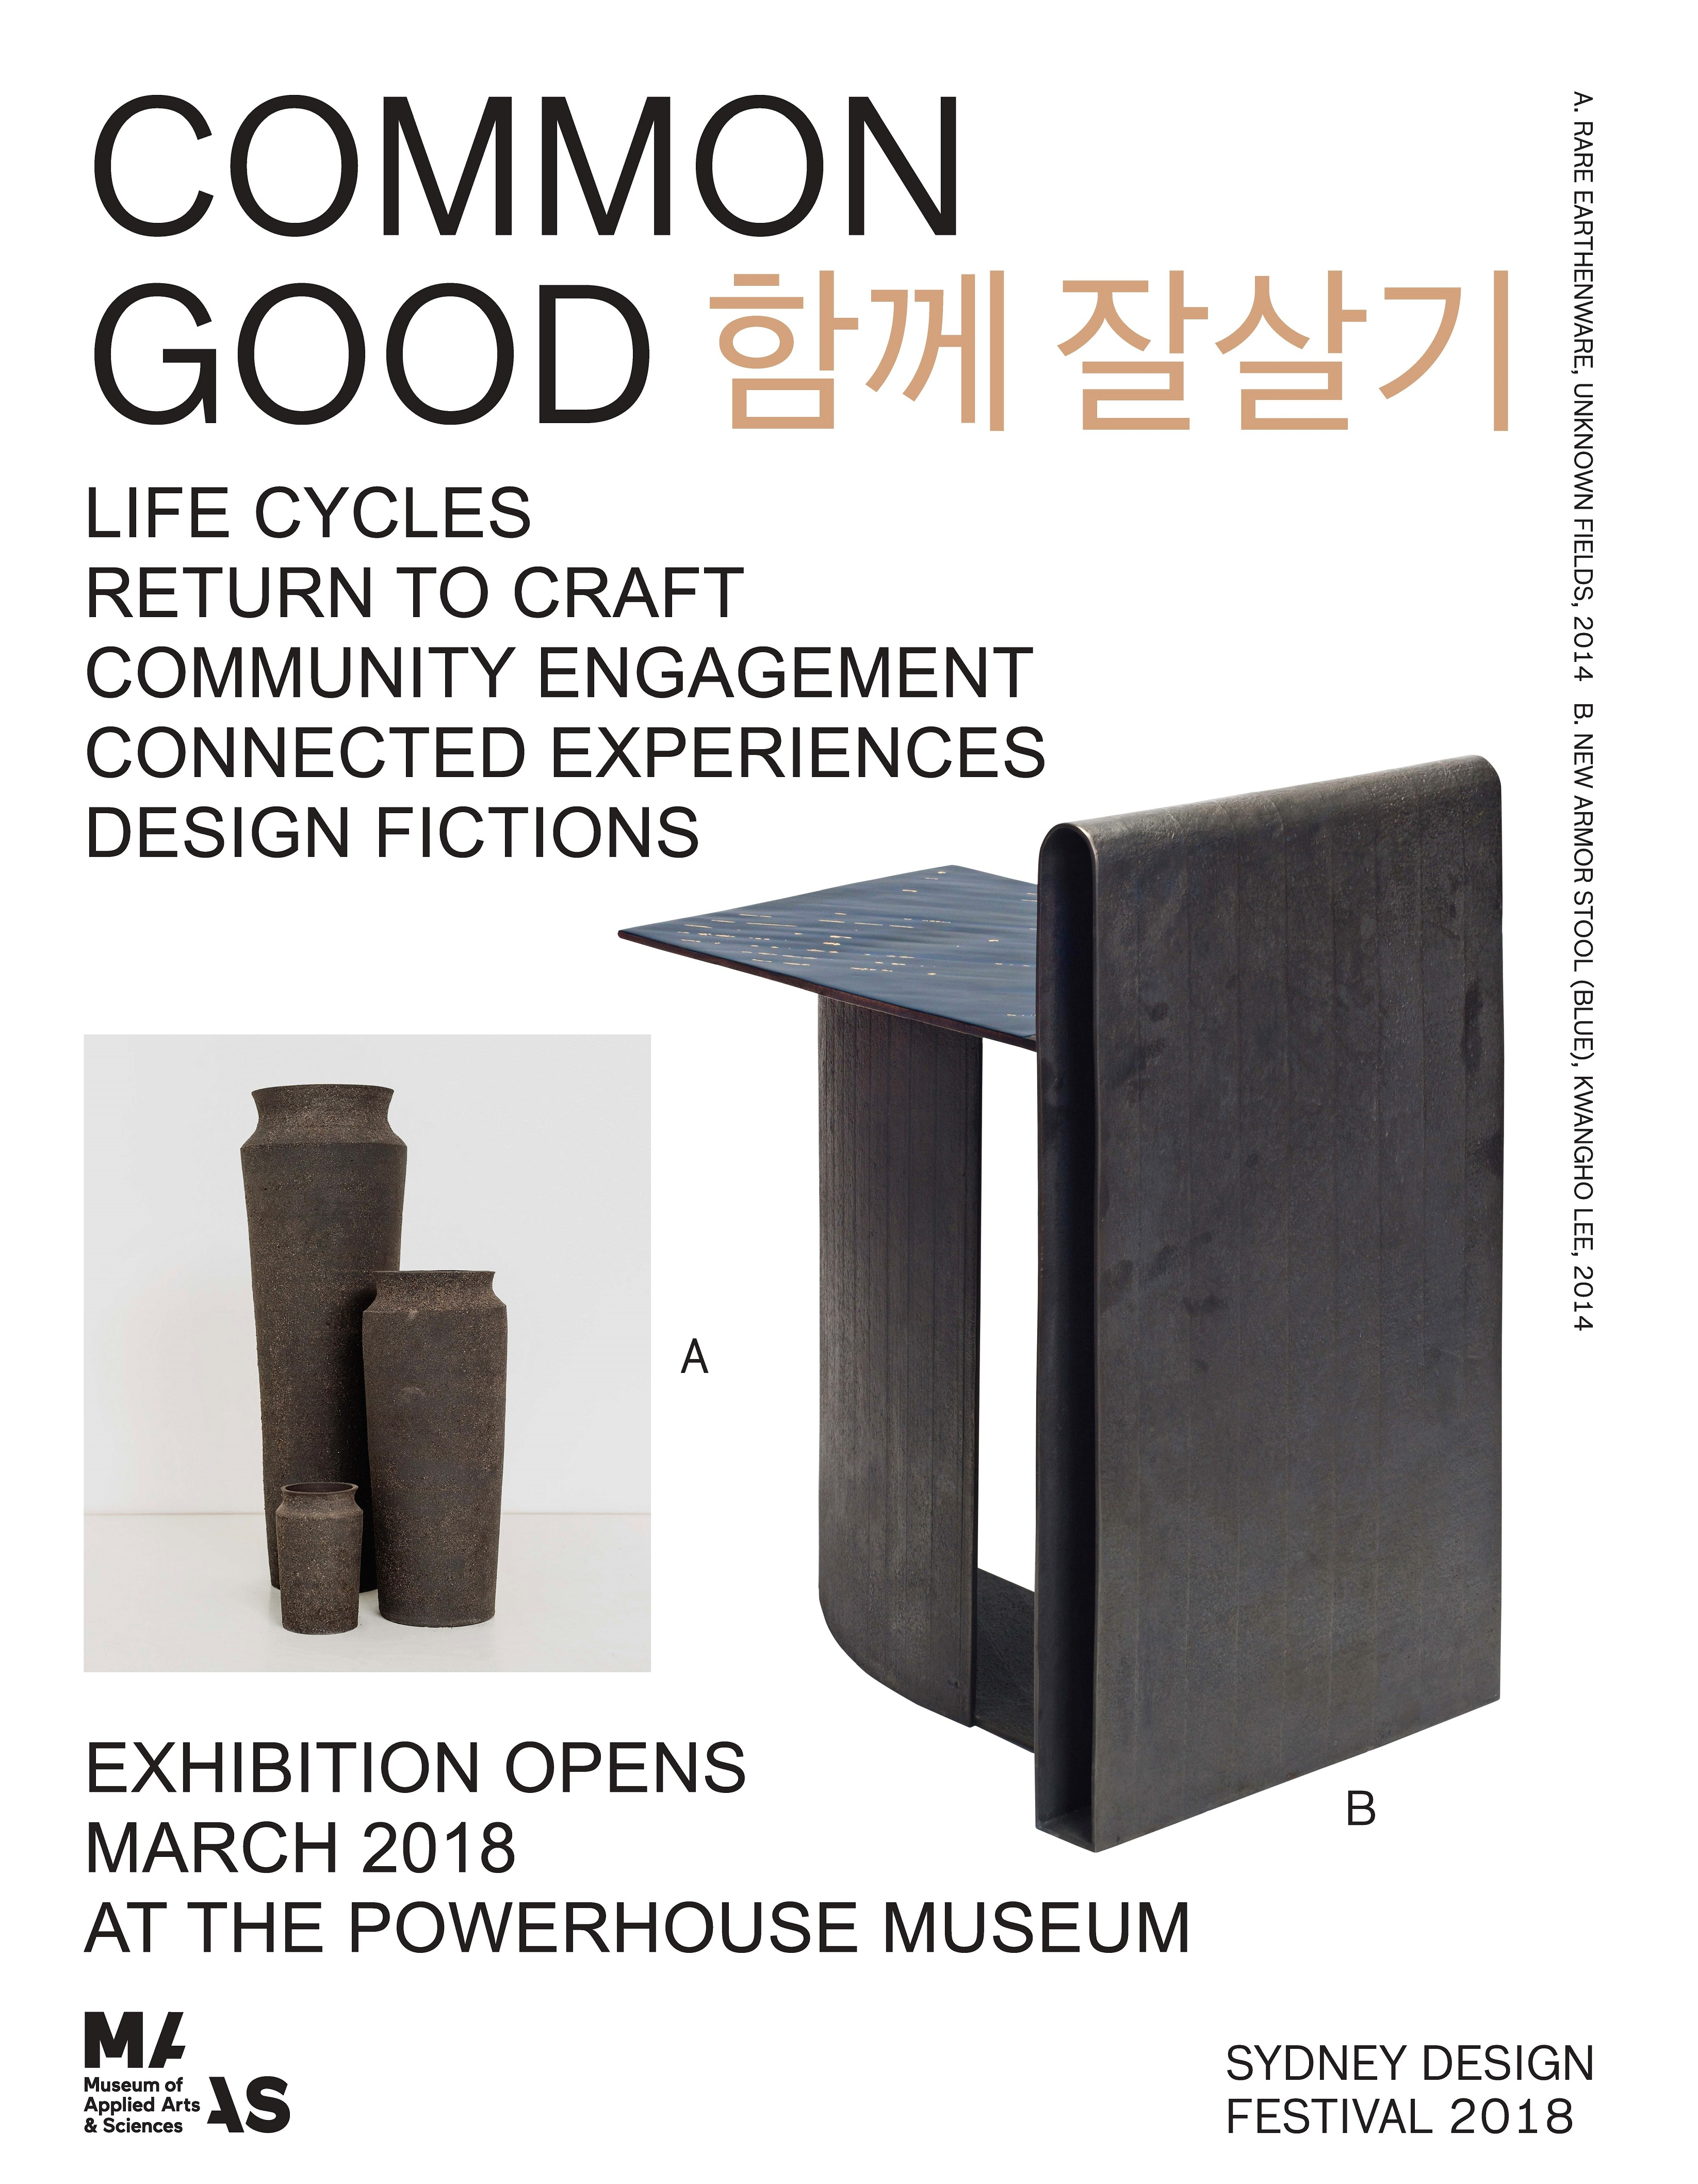 Common Good exhibition poster from March 2018